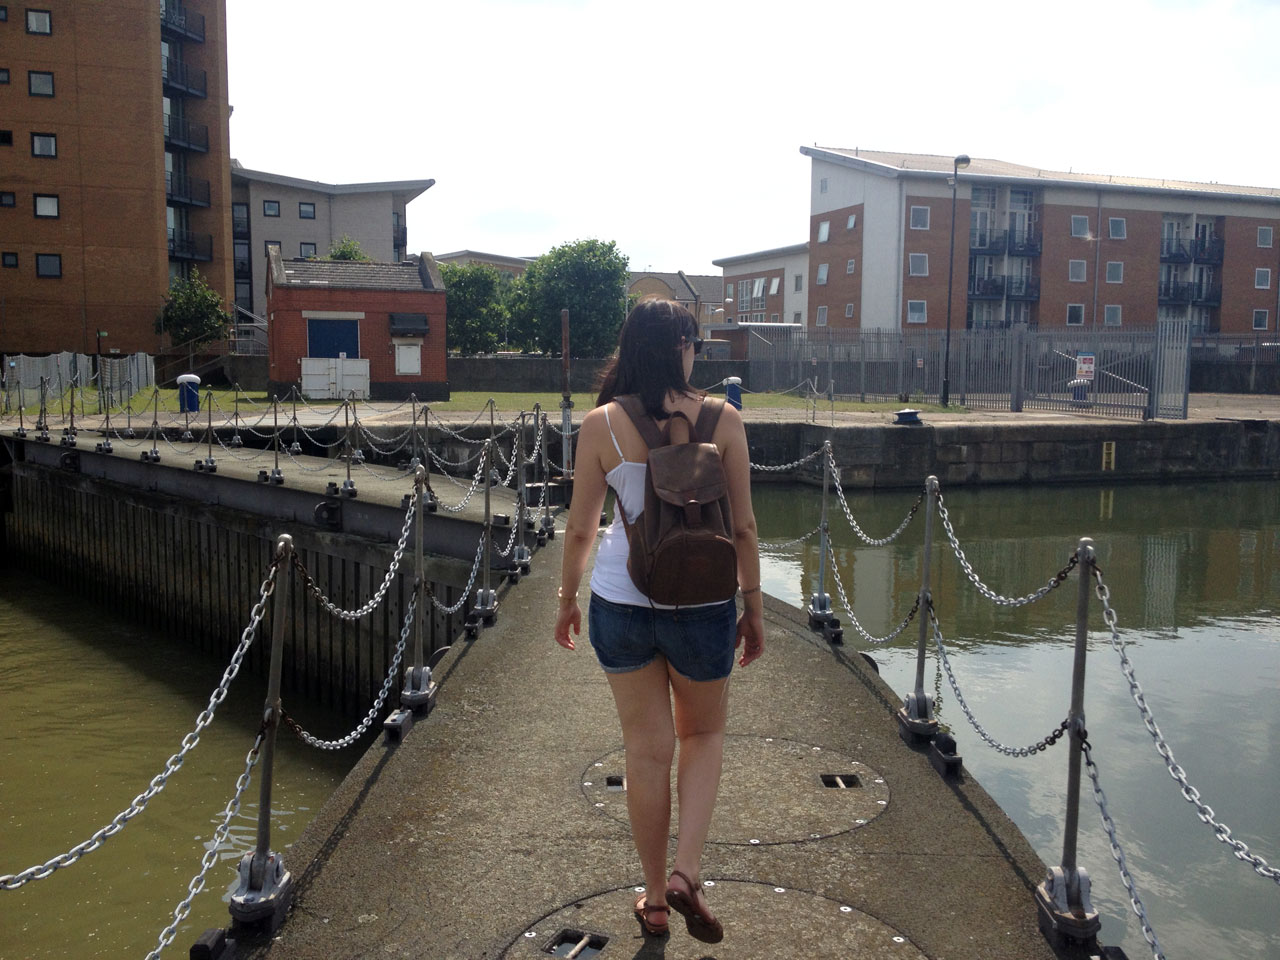 Polly crossing the lock gates at Gallions Reach, London